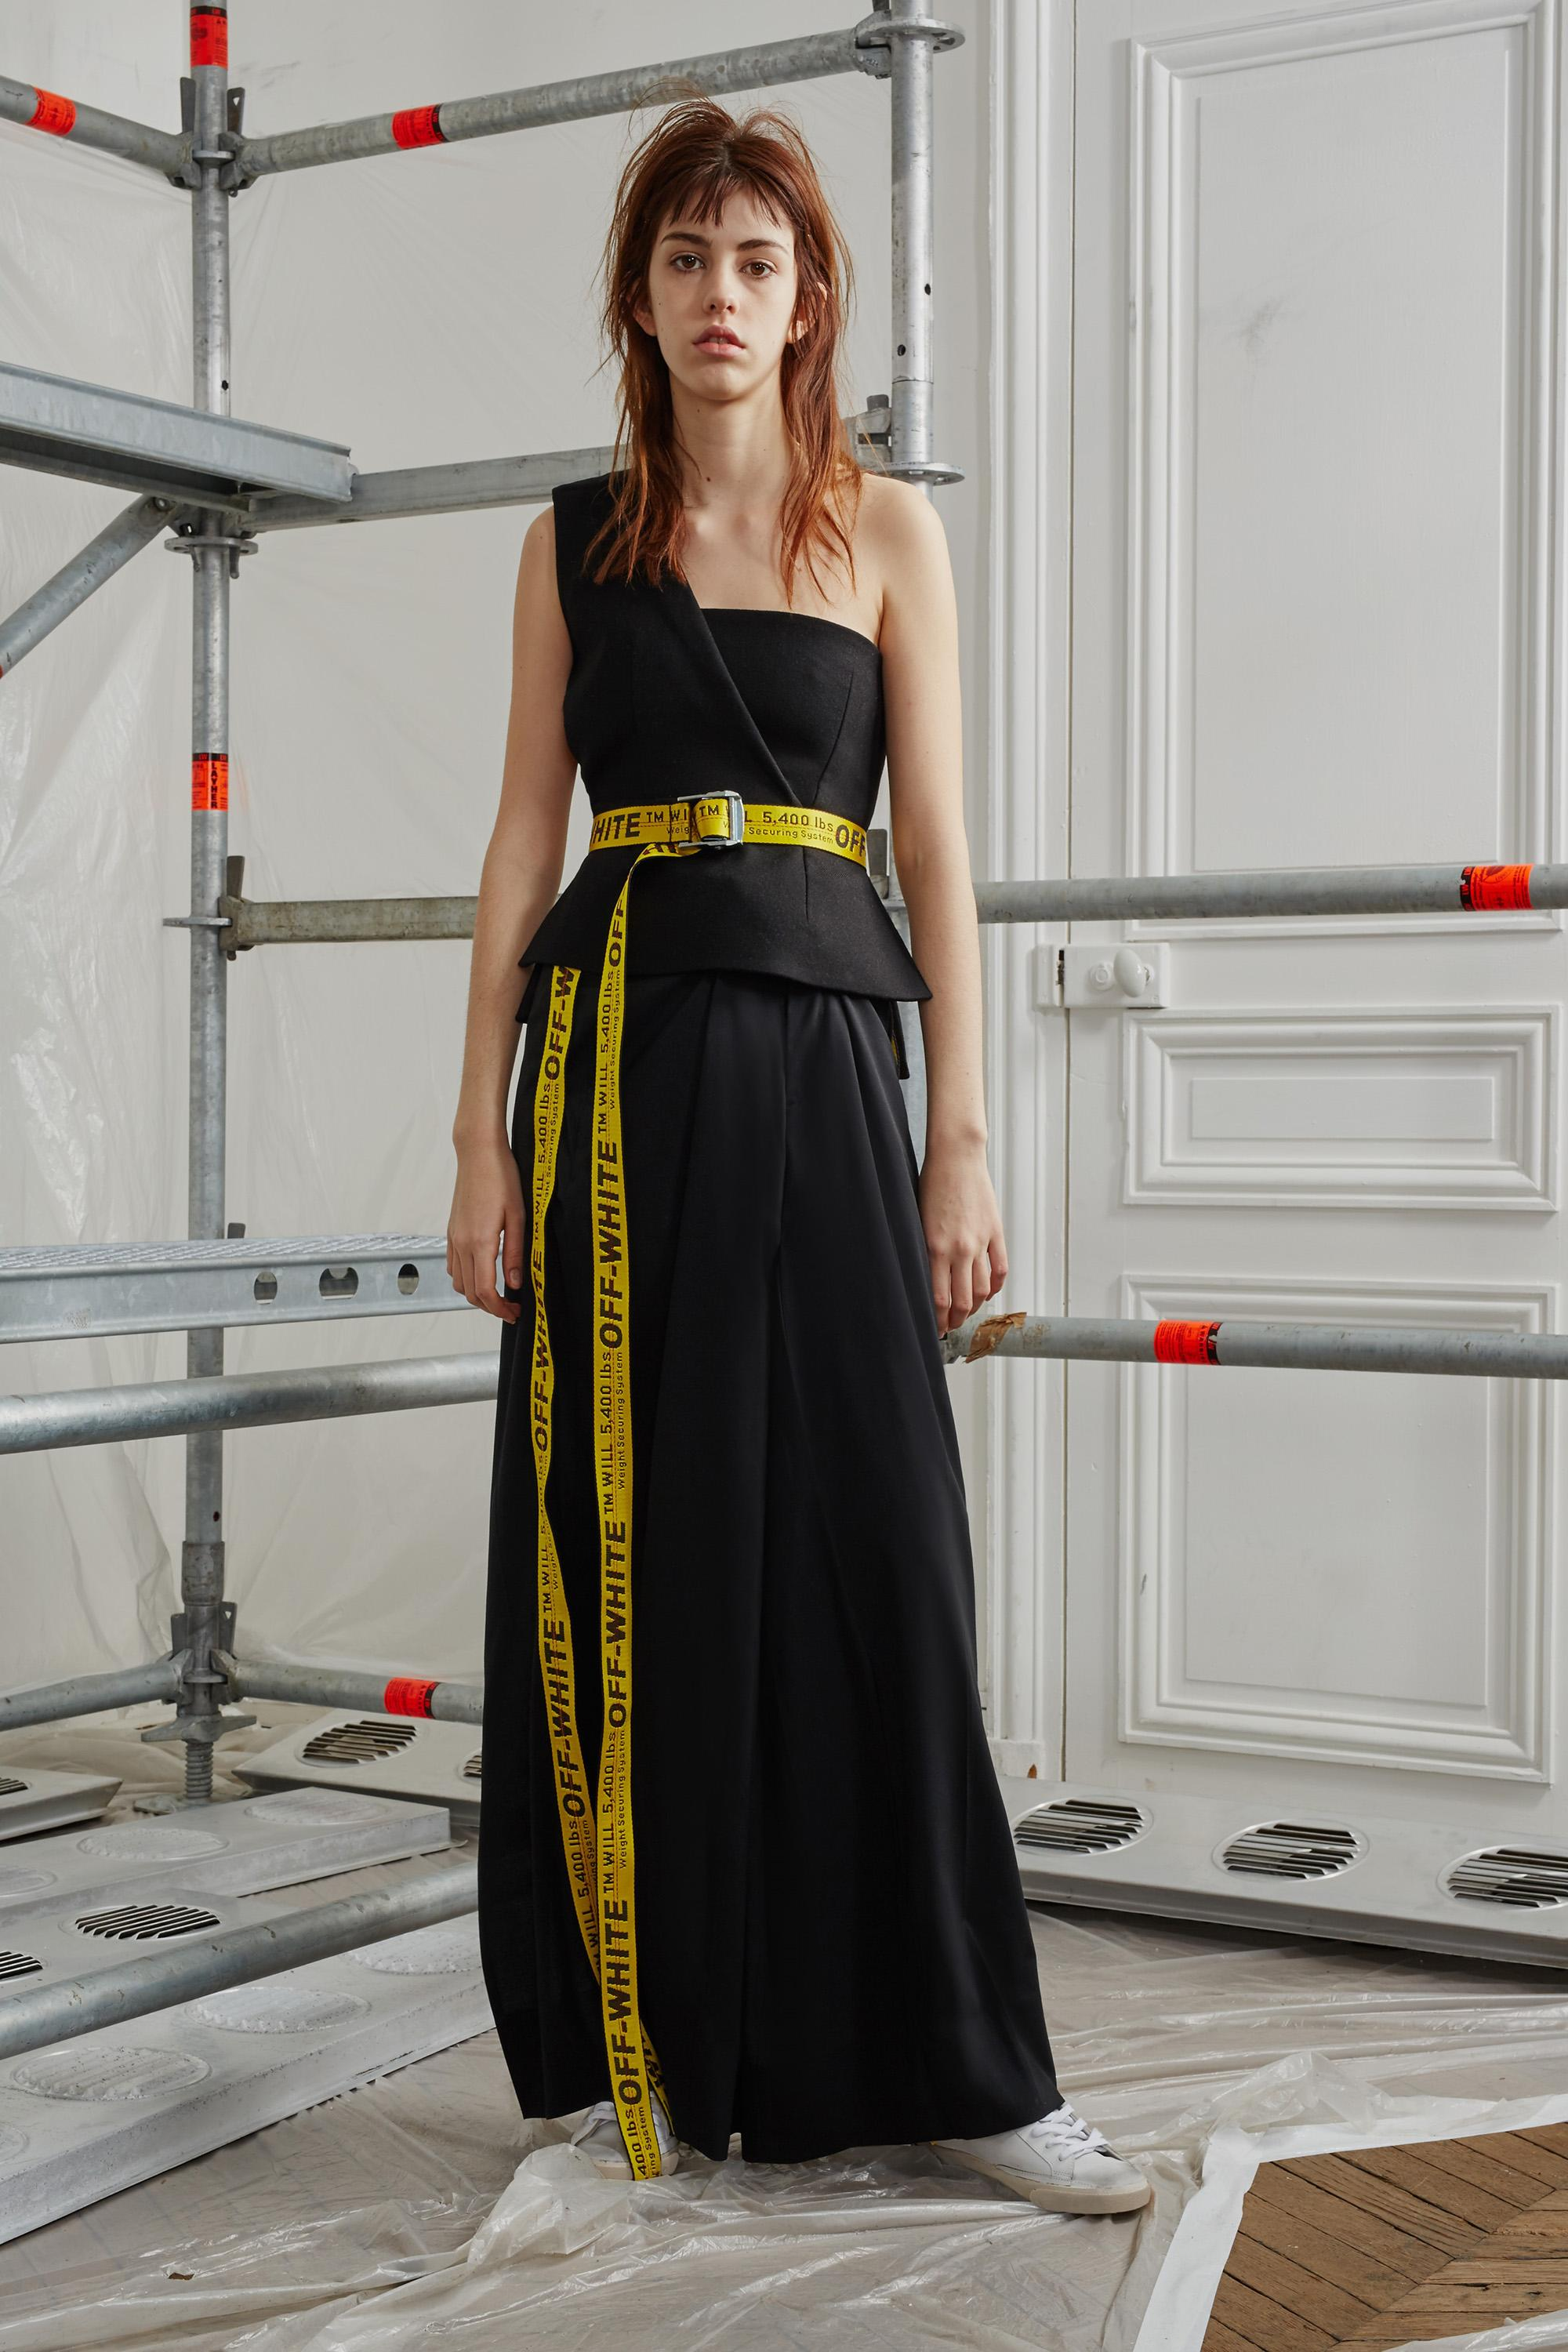 """A pale young woman wears a single-shoulder, floor-length black dress cinched with an industrial-yellow belt with black lettering that reads """"OFF-WHITE"""" and that drapes down to her white sneakers."""